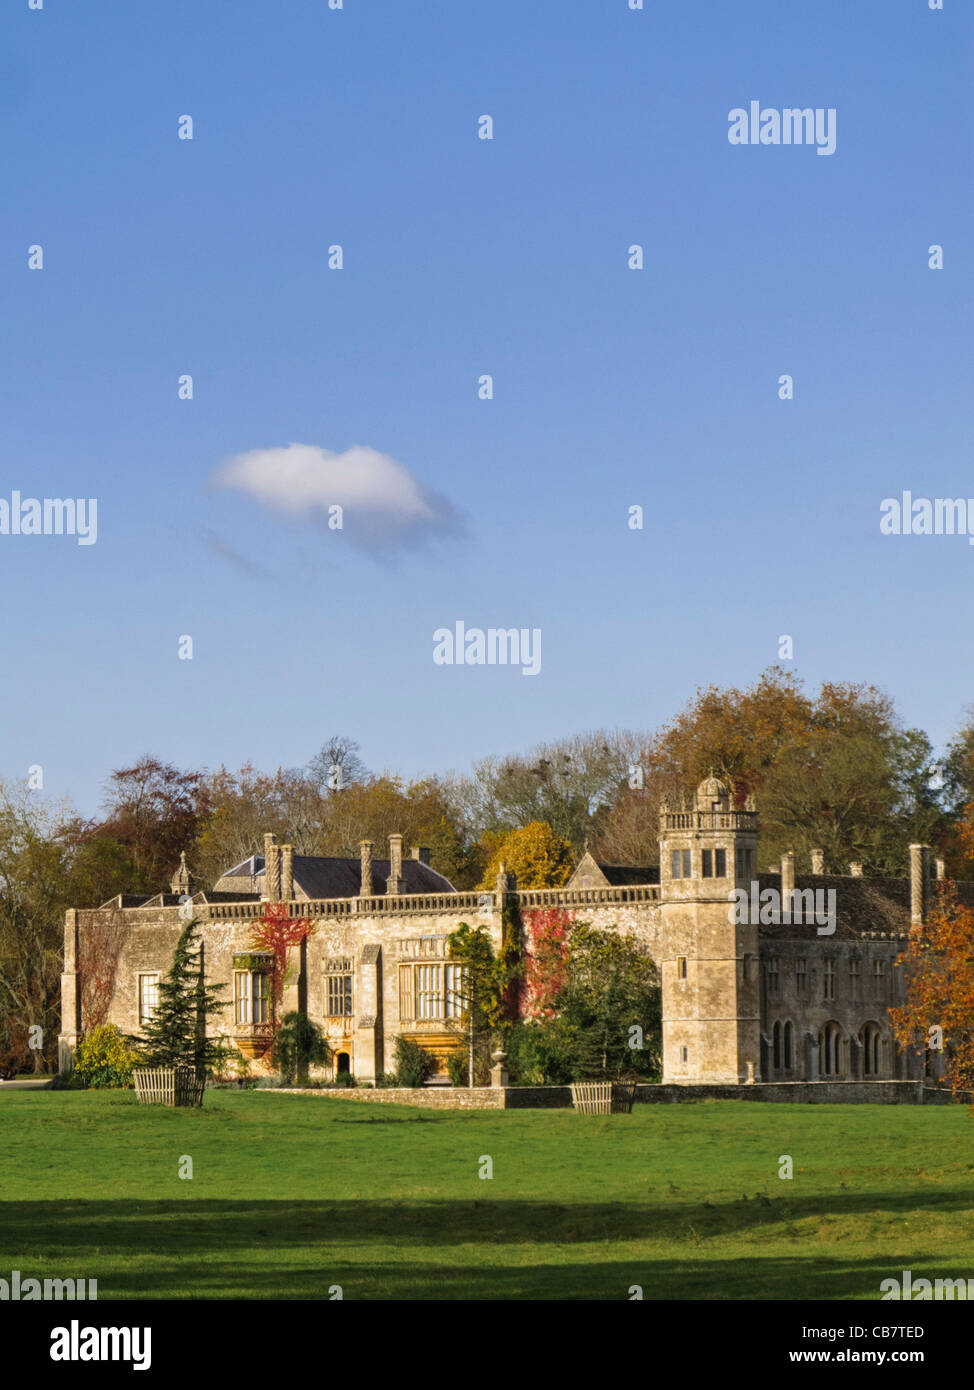 Lacock Abbey - old, historic country house in Wiltshire, England, UK - Stock Image